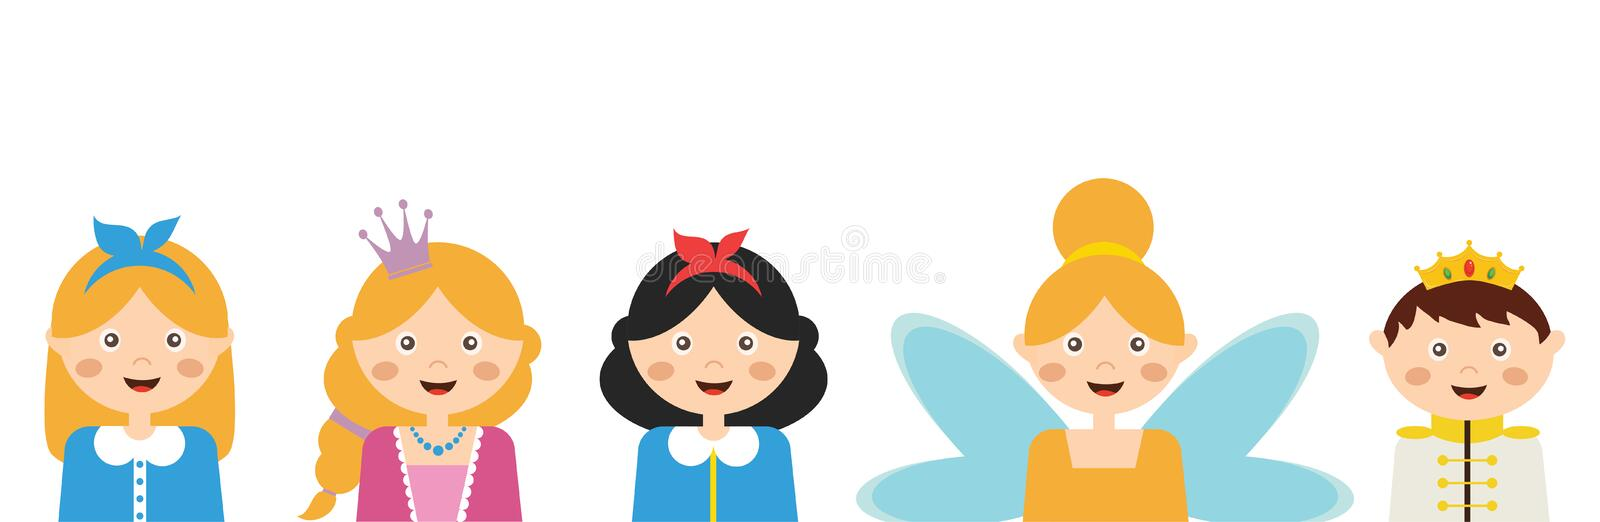 Kids wearing different costumes . banner template stock illustration